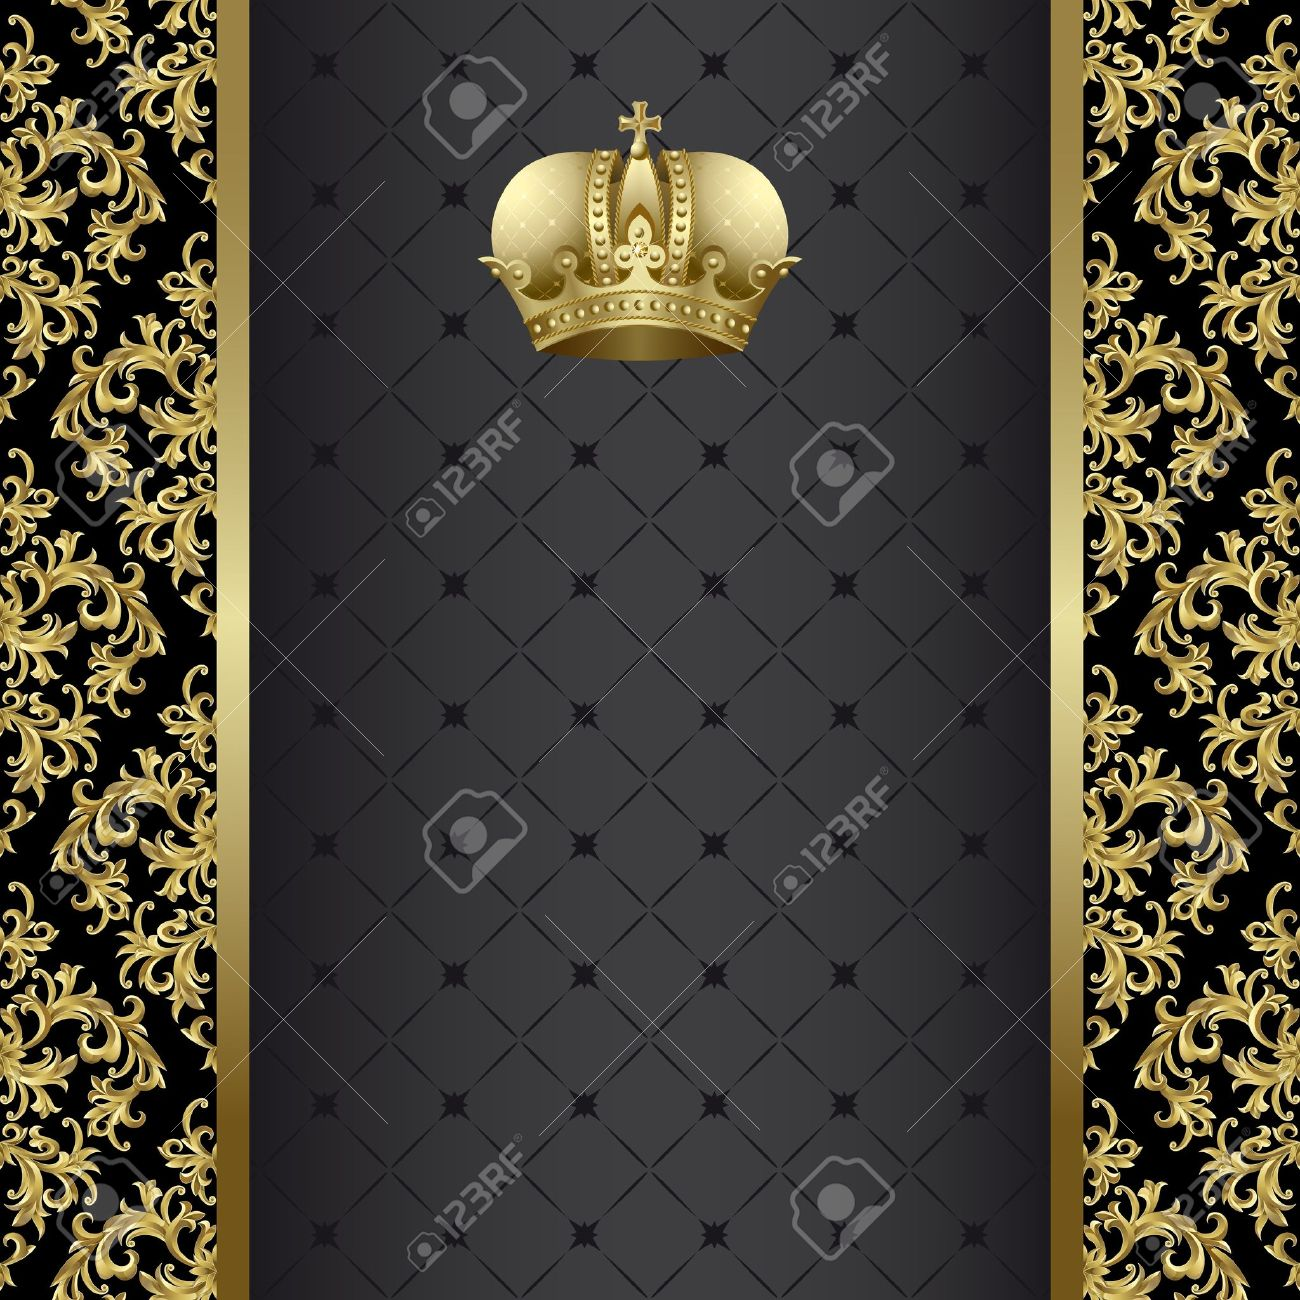 Black background with gold abstract plant and crown - 10199747